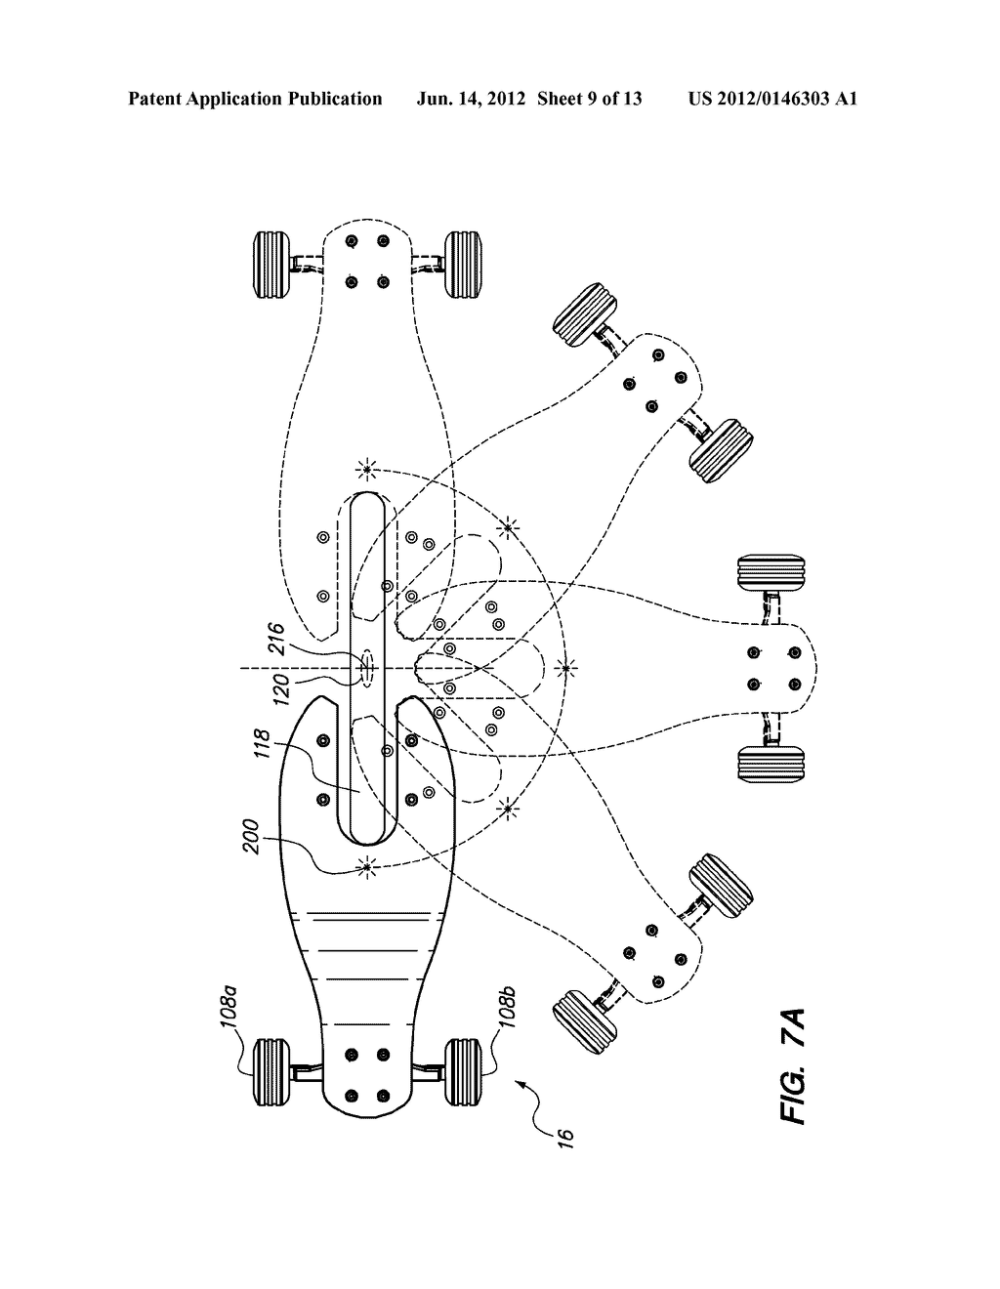 medium resolution of three wheeled scooter with rear skate truck and fixed front wheel diagram schematic and image 10